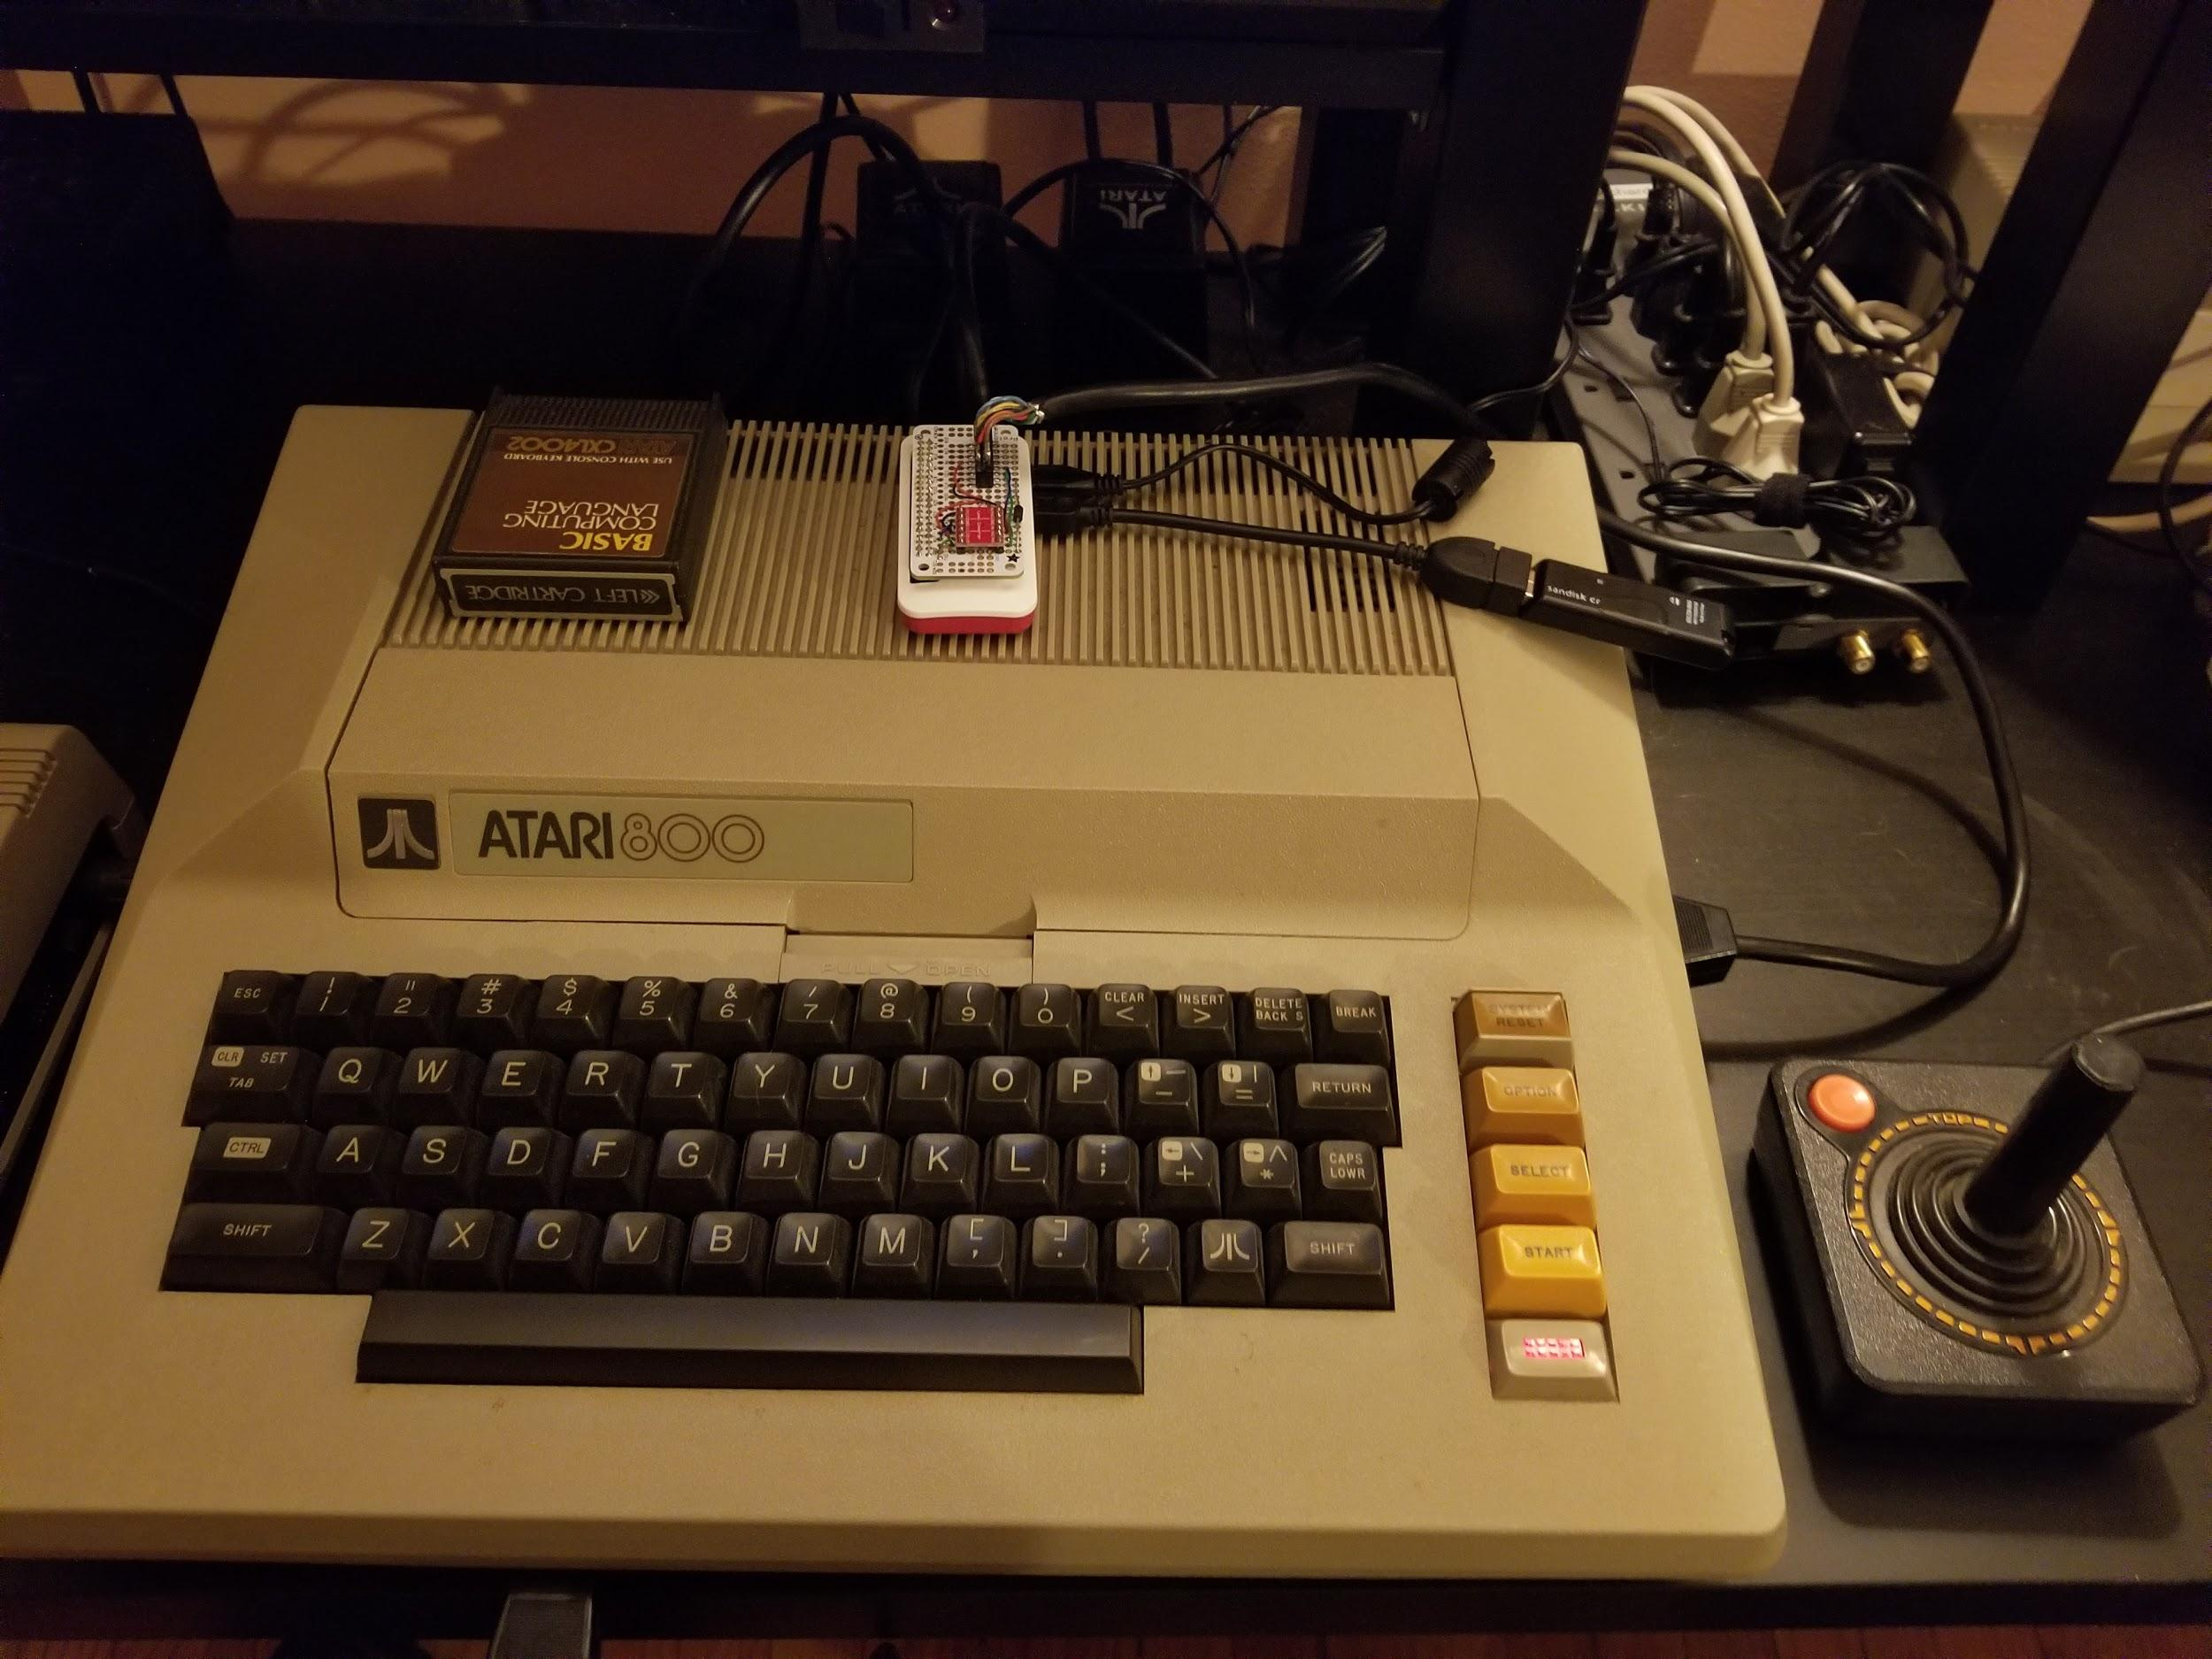 Hacking The Atari 800 Serial Input Output To A Raspberry Pi Zero W Wiring Diagram Supercool Project With Some Retro History Backstory And Walkthrough Over At Bloglmorchardcom